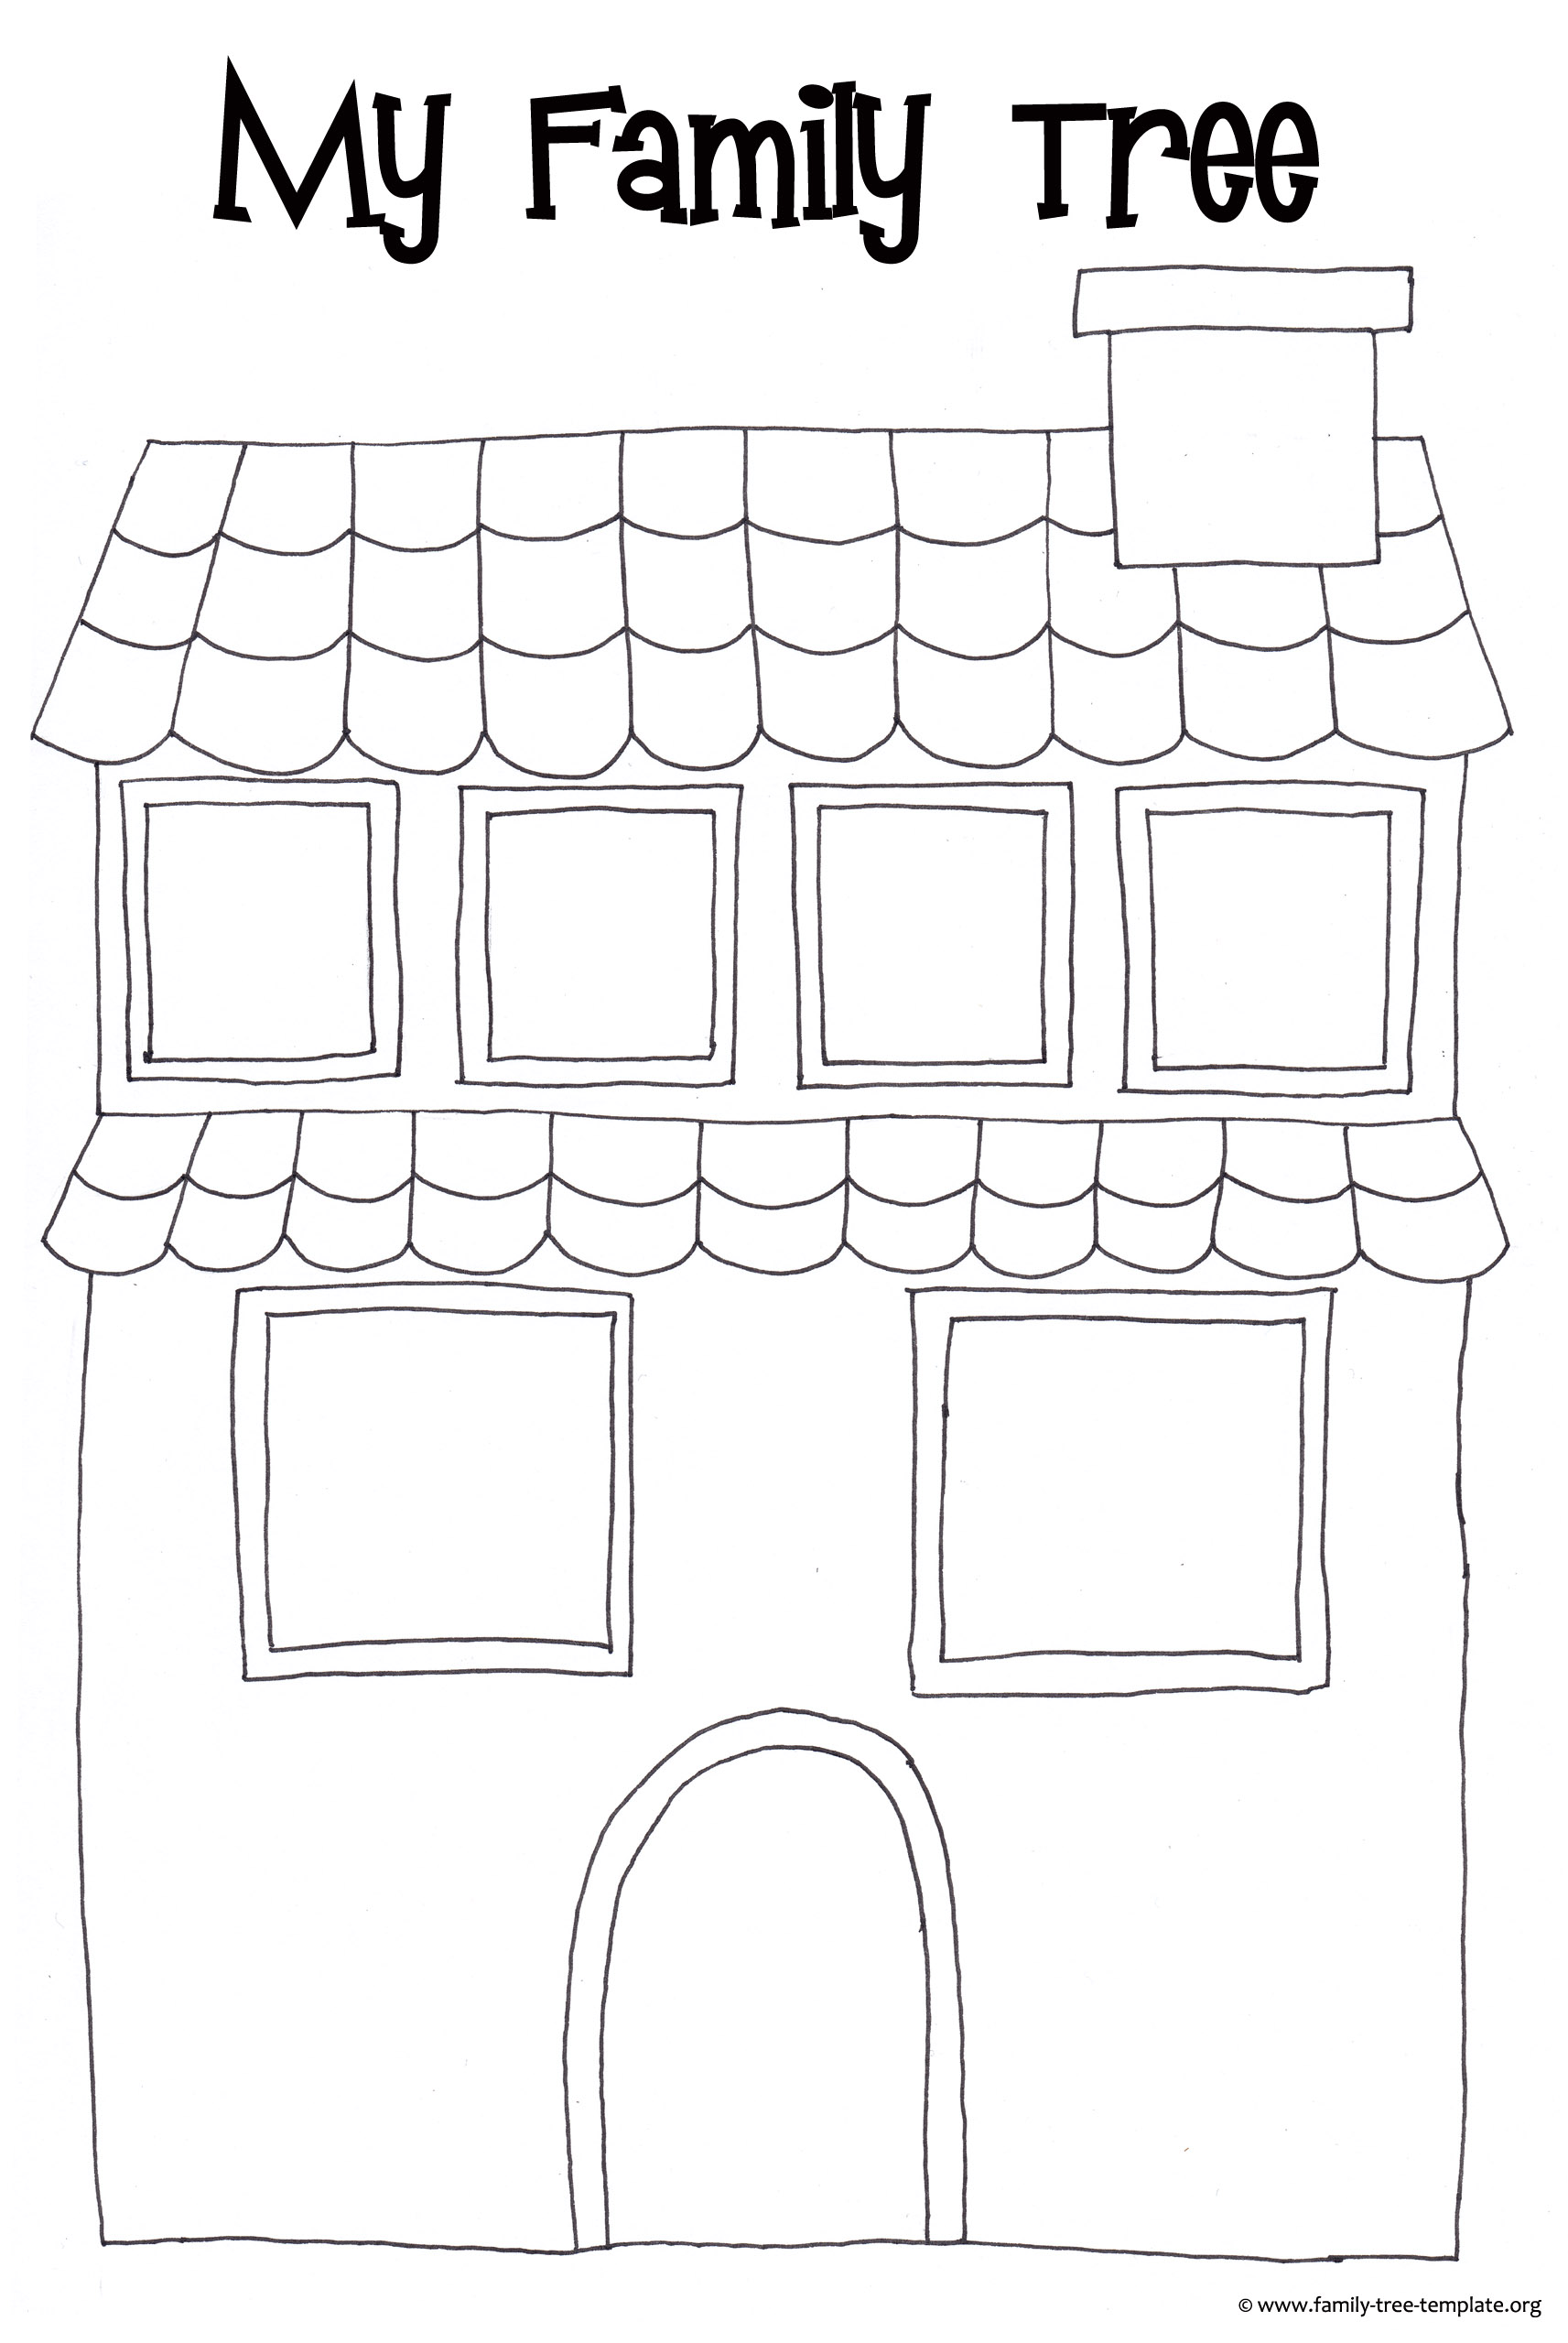 Fun family tree house for kids to color